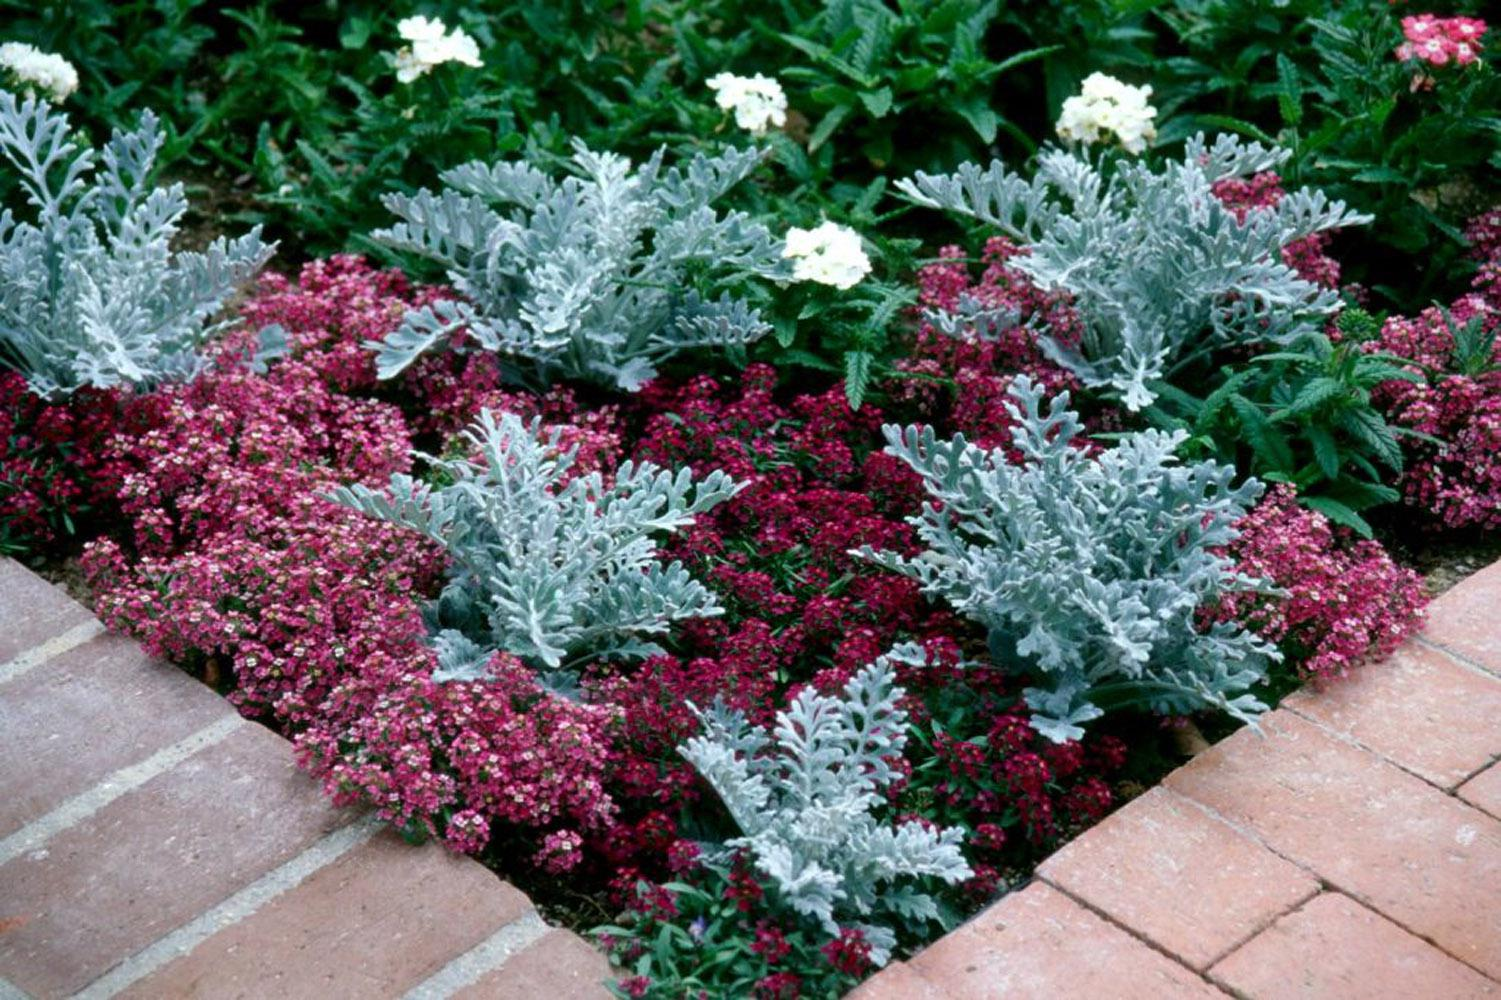 In addition to combining with sweet alyssum, pansy or dianthus in the fall, try dusty miller with other drought-tolerant spring selections like gomphrena, salvia, purple heart, pink lantana and yarrow.